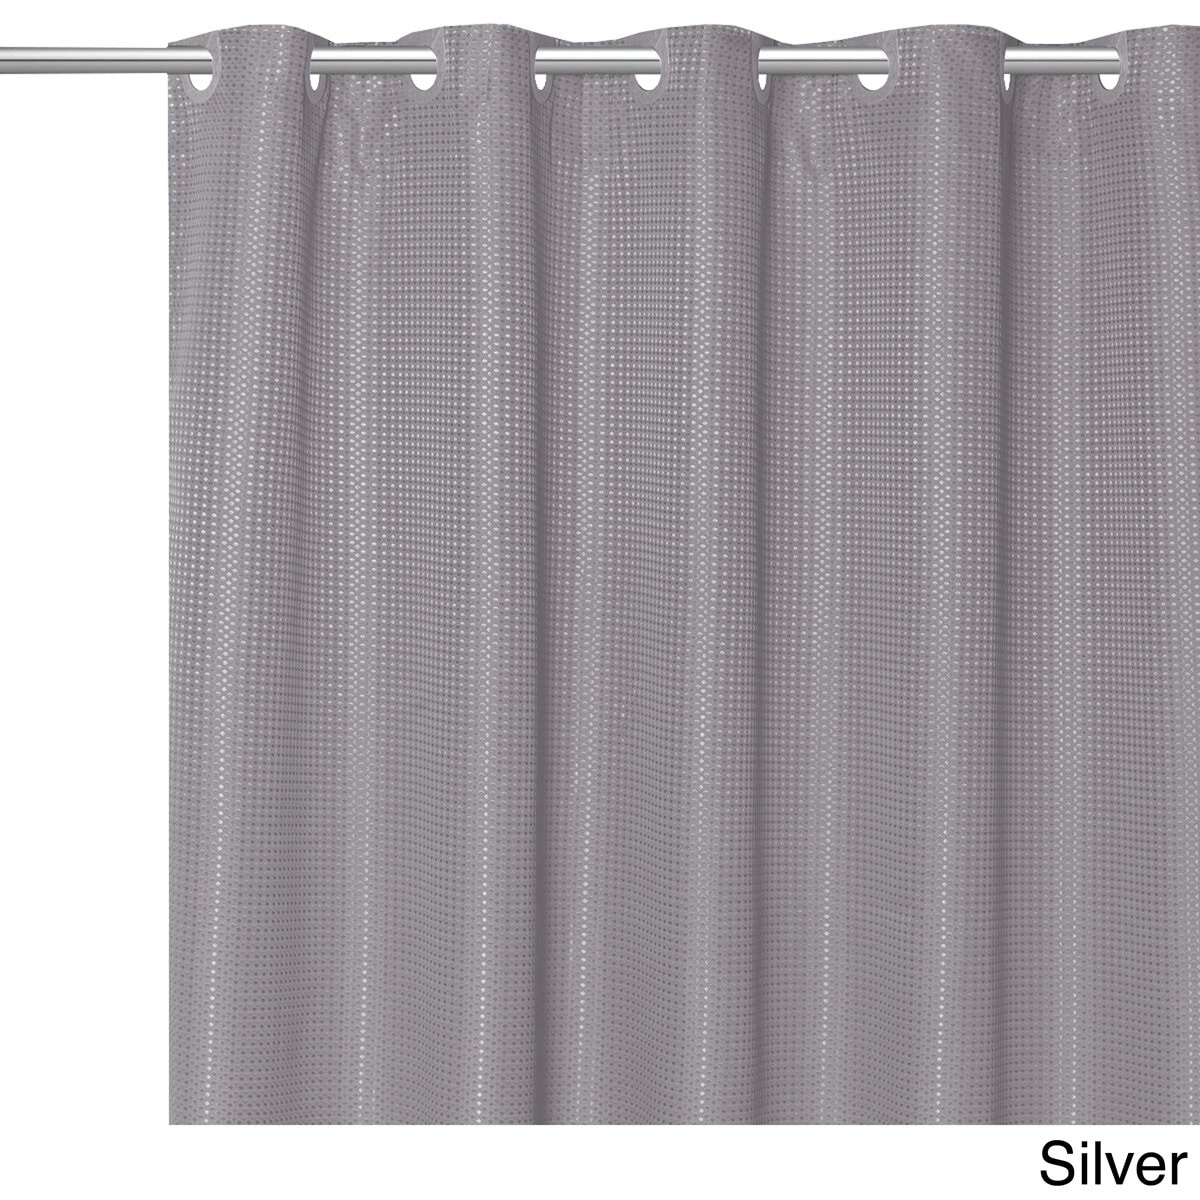 EZ ON Waffle Weave Fabric Shower Curtain With Snap Off Liner Assorted  Colors (70